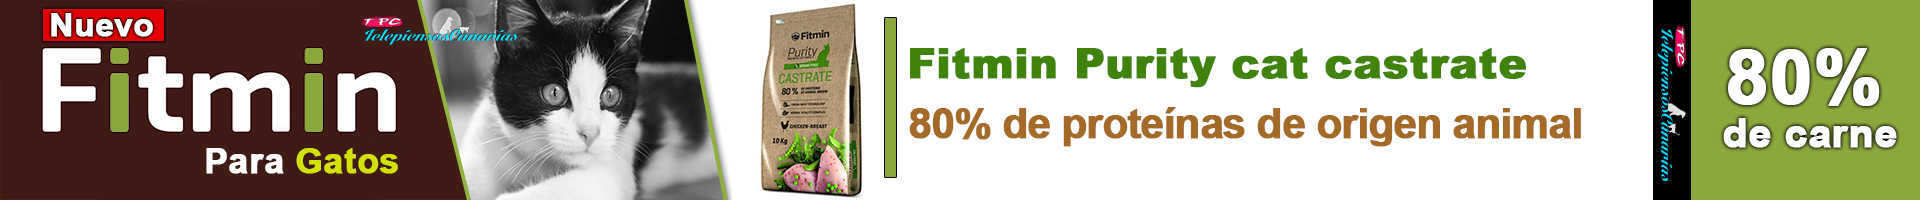 Fitmin Purity cat castrate, para gatos castrados